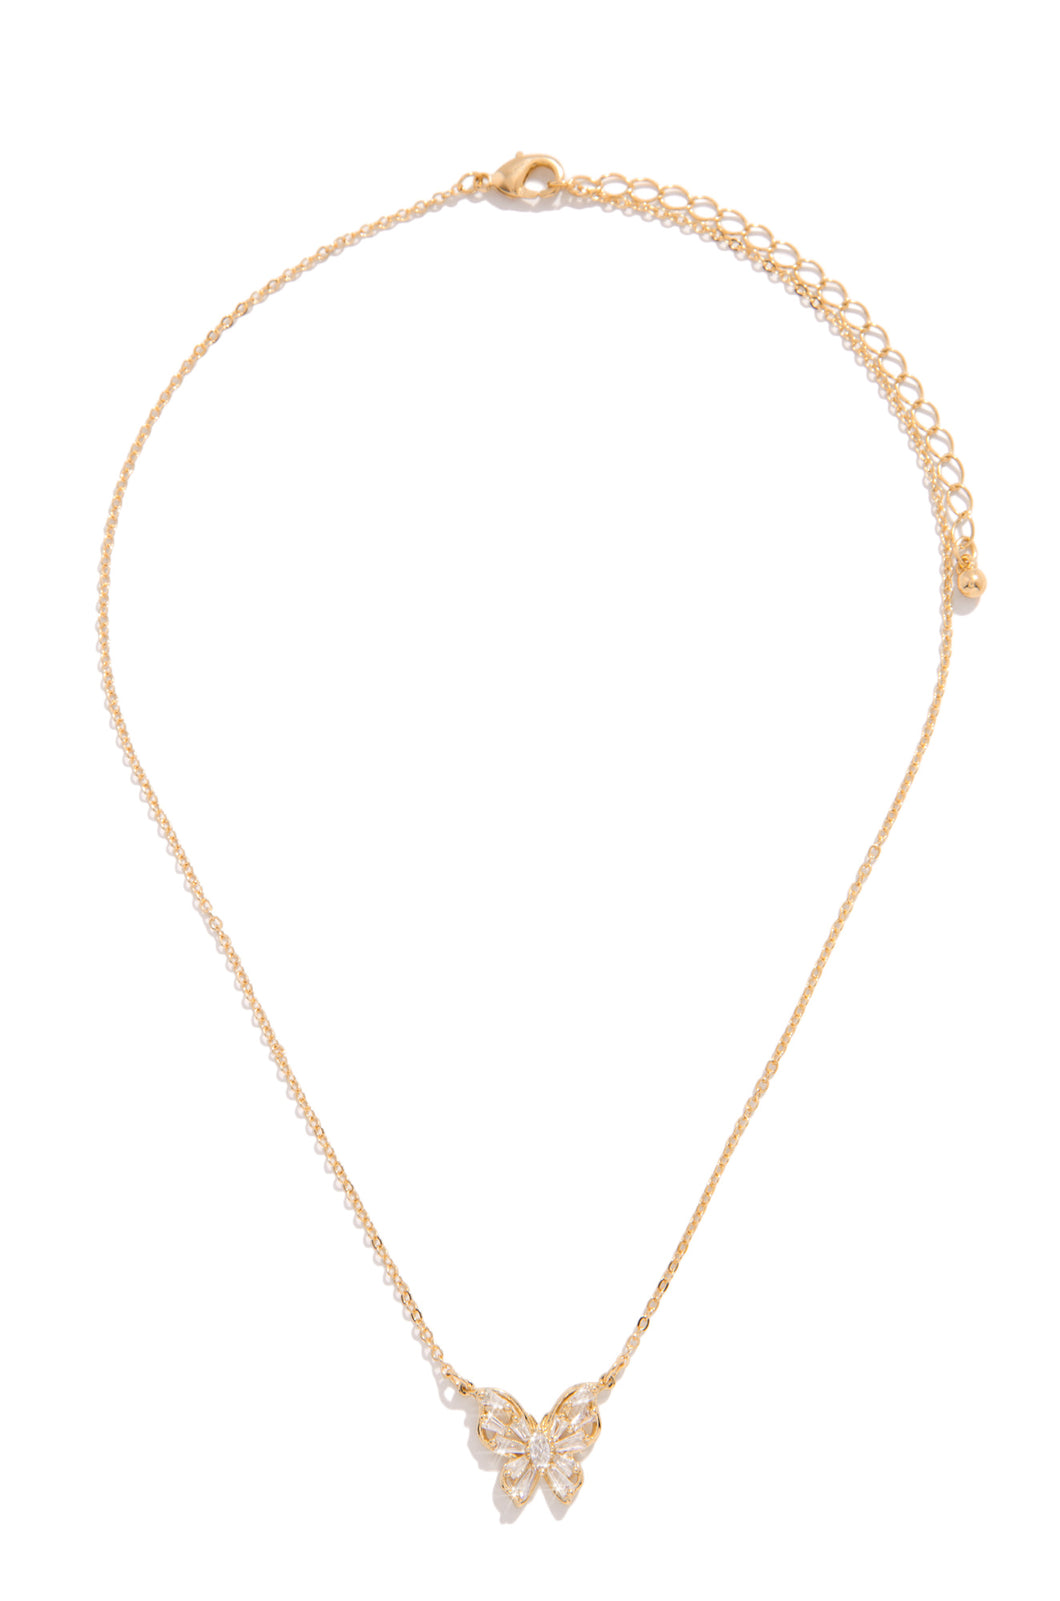 Born Beautiful Necklace - Gold